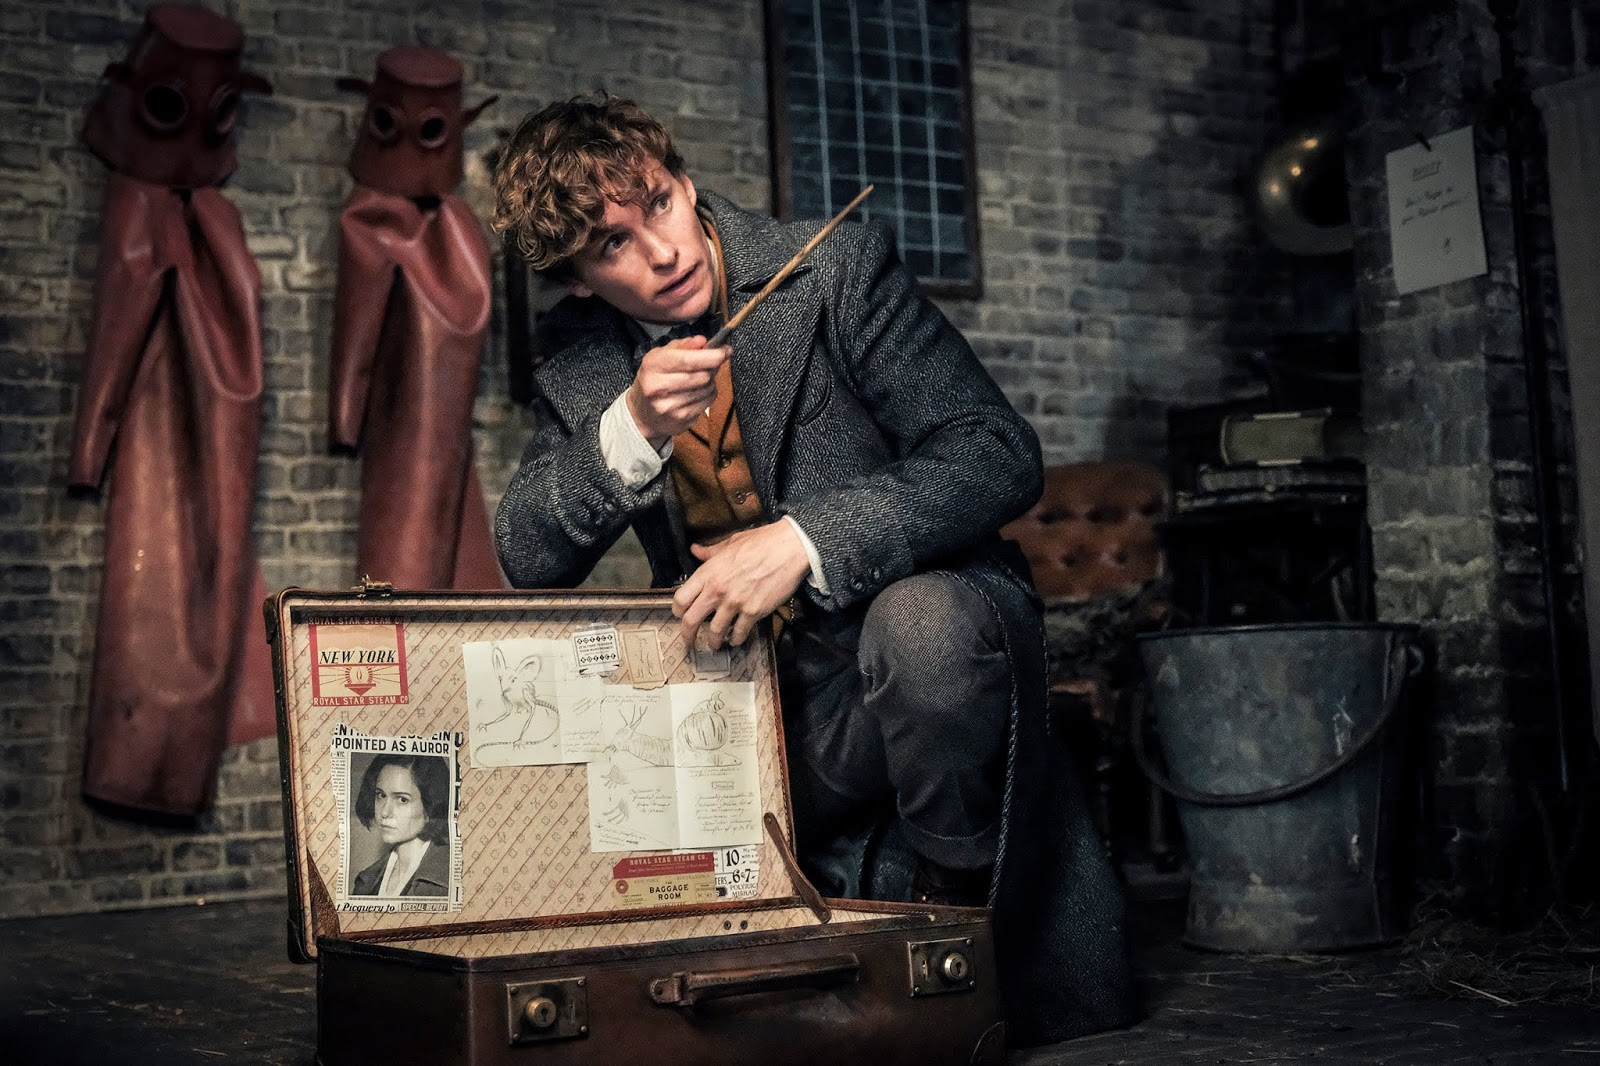 MOVIES: Fantastic Beasts: The Crimes of Grindelwald - Review